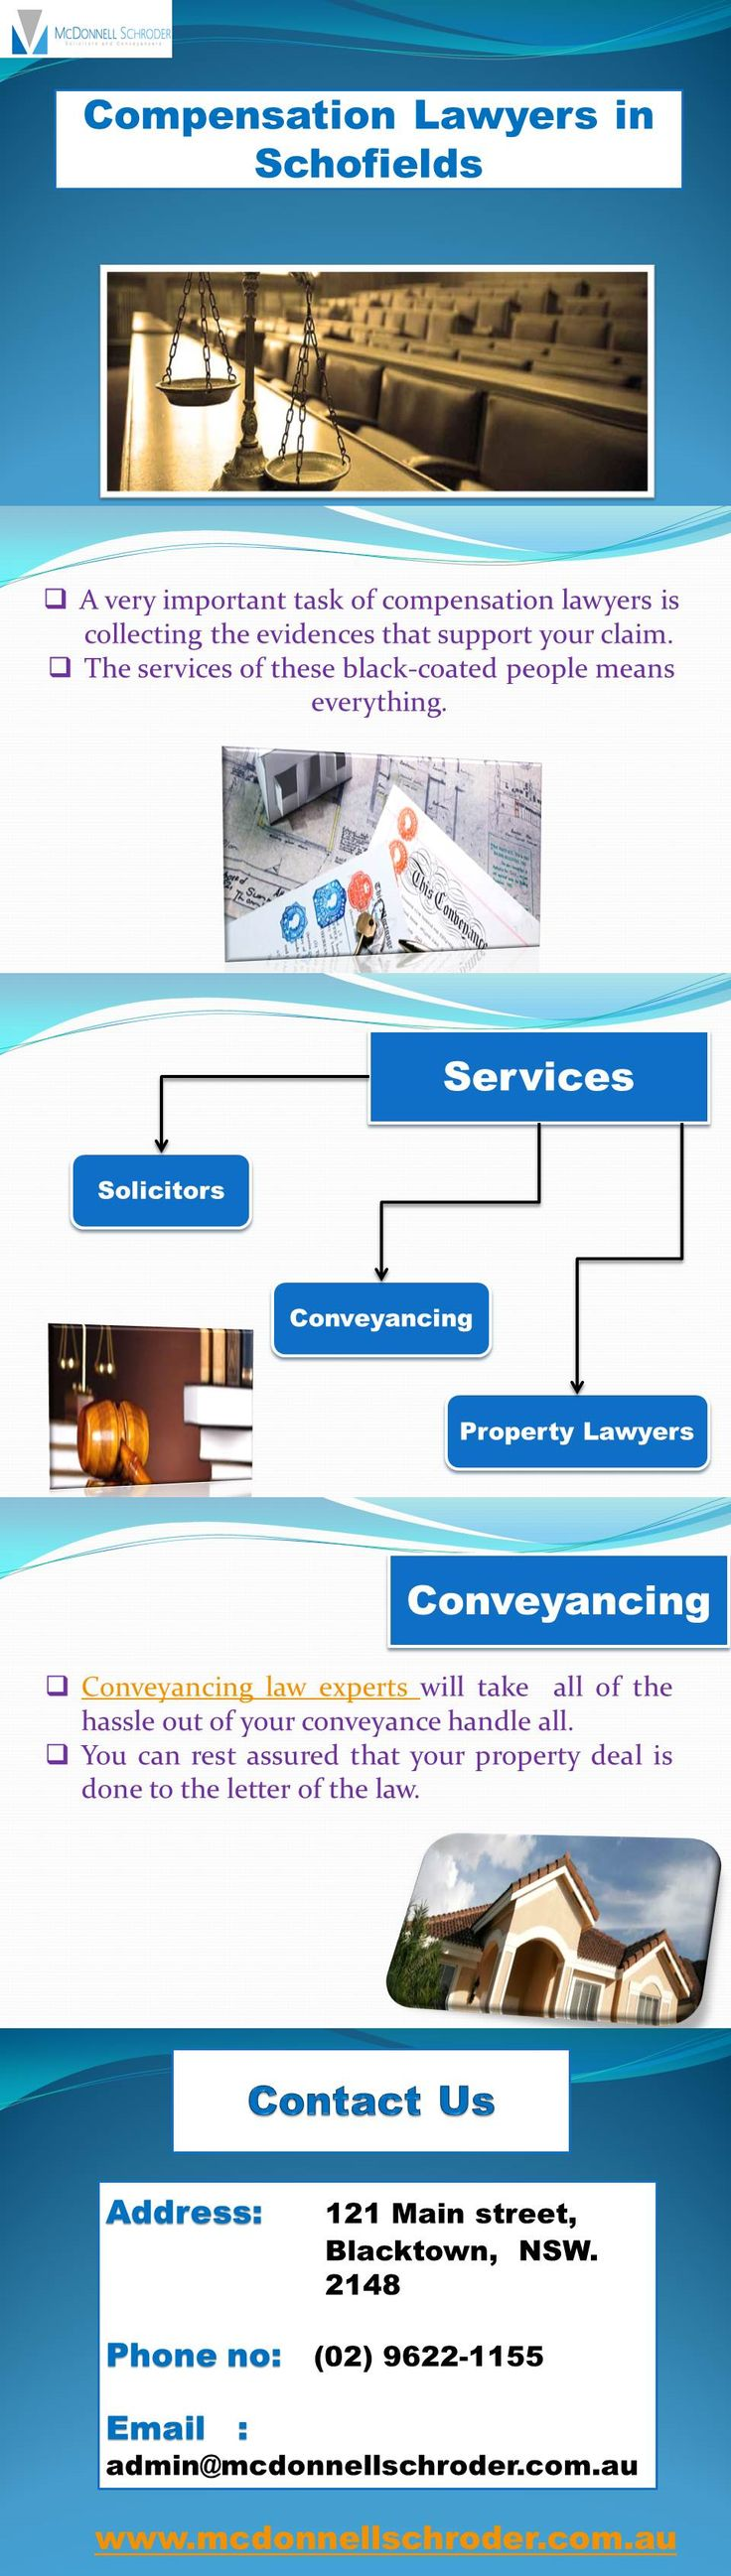 McDonnell Schroder offers Compensation lawyer services in Blacktown at near you. Get best solicitors in Schofields and Blacktown.